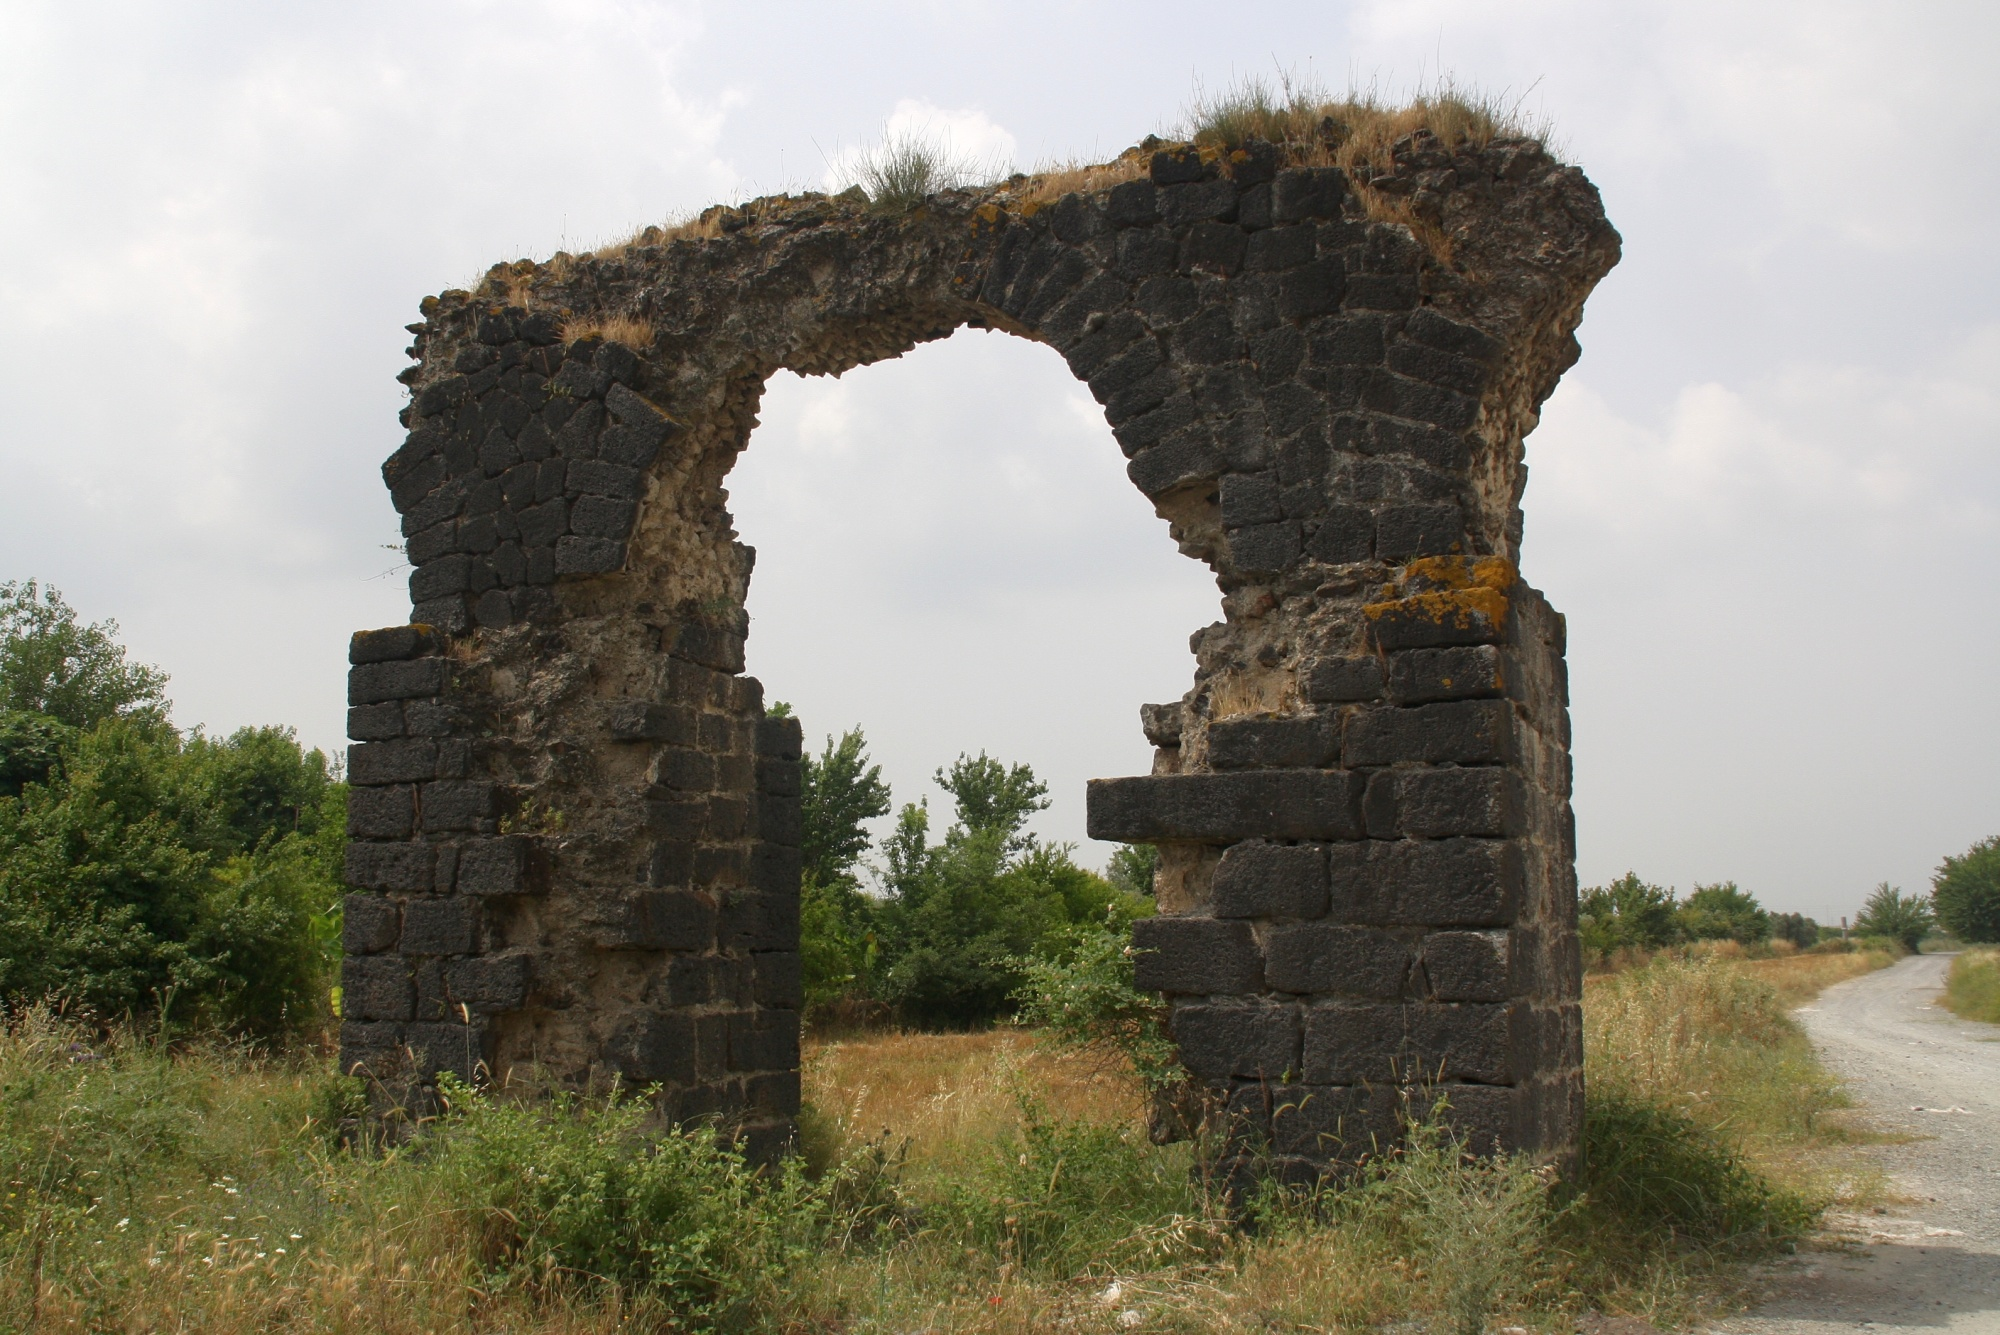 Issus, the Roman aqueduct